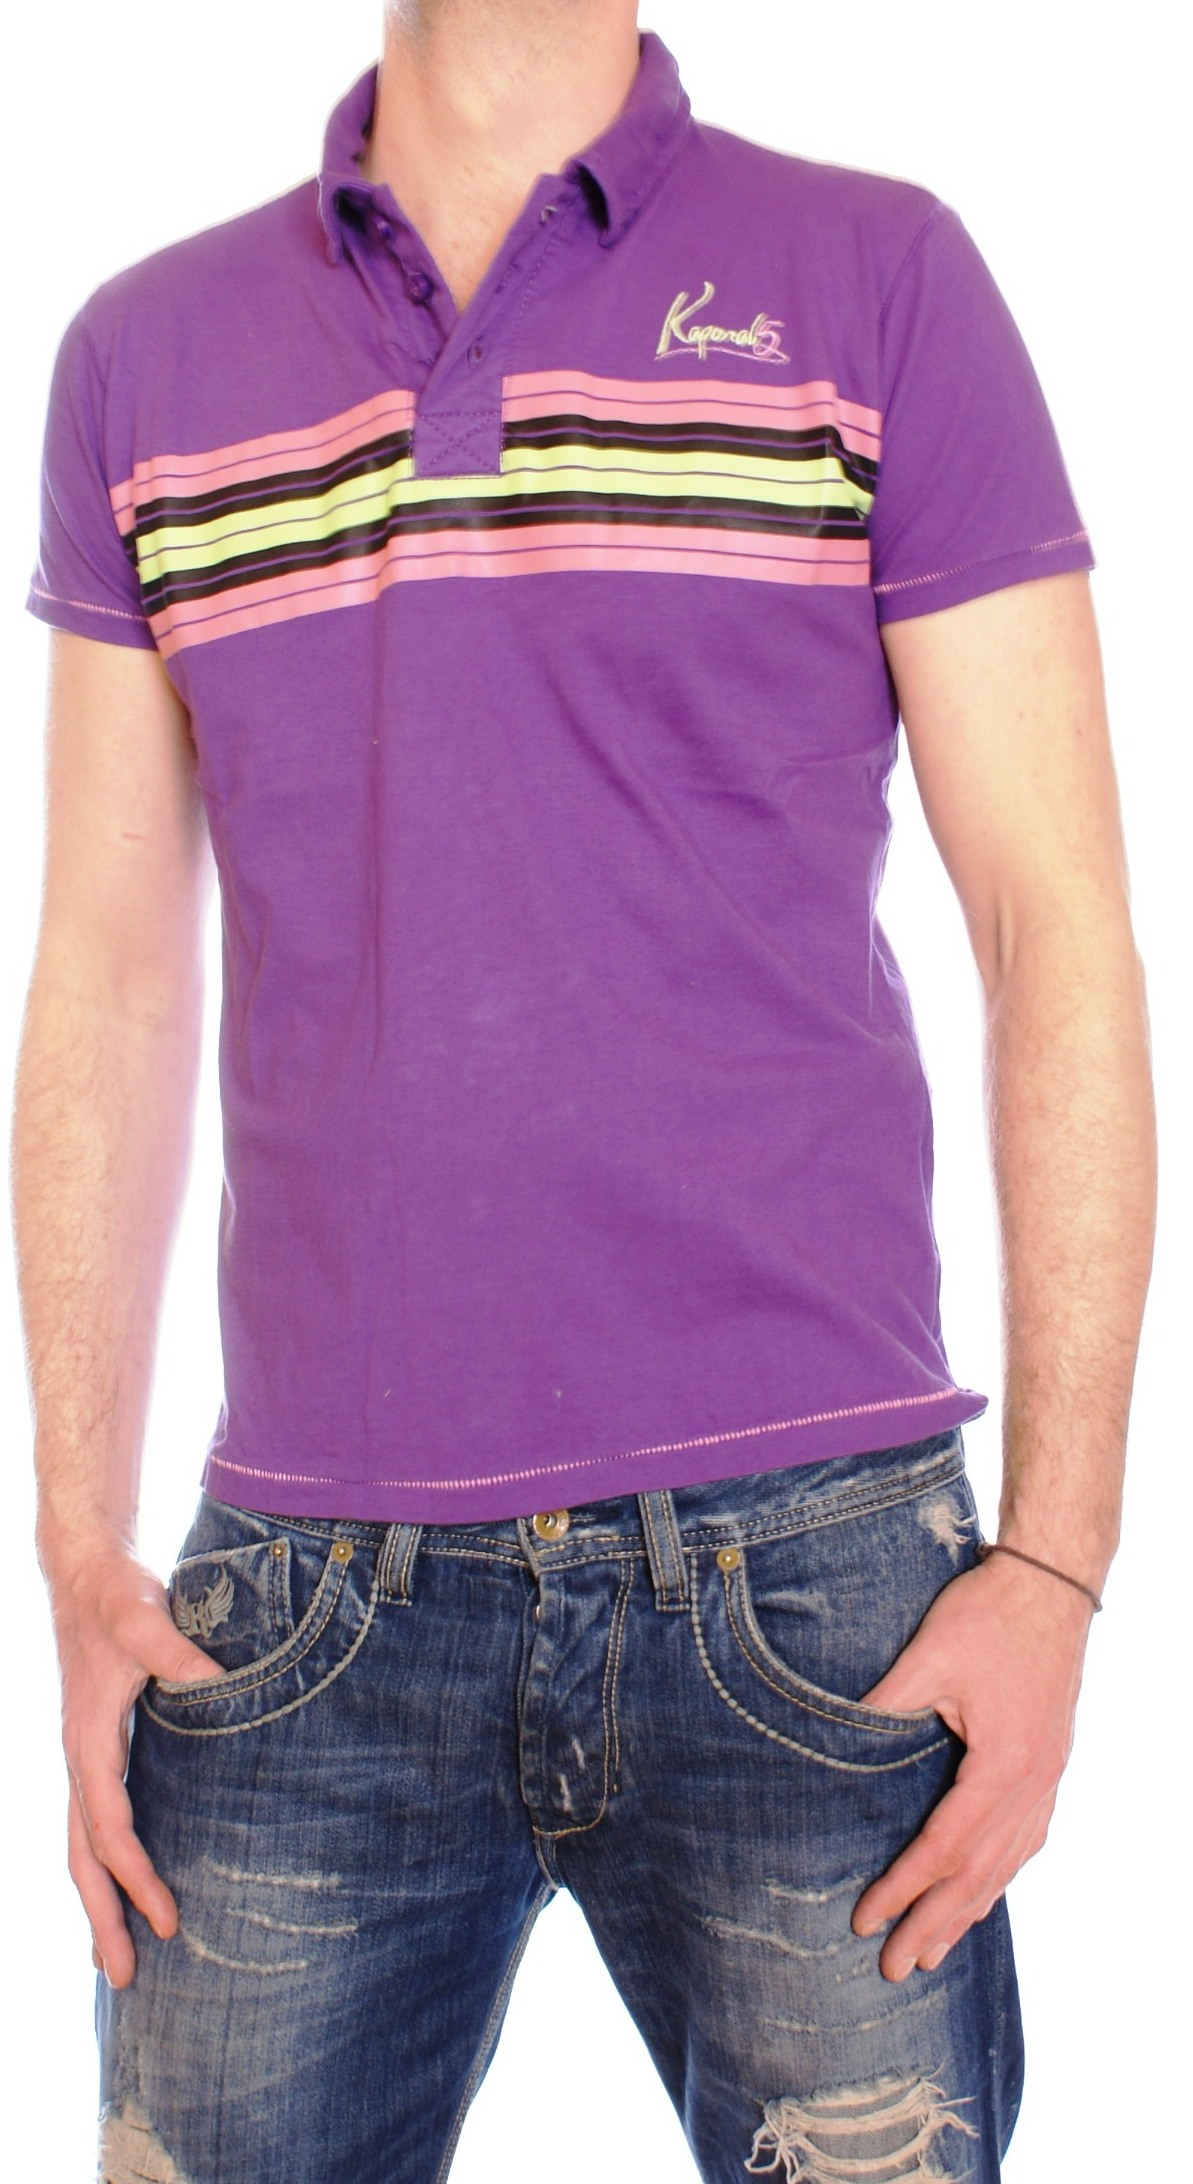 upload/product_display_image/201211/kaporal_sando_violet_a.jpg